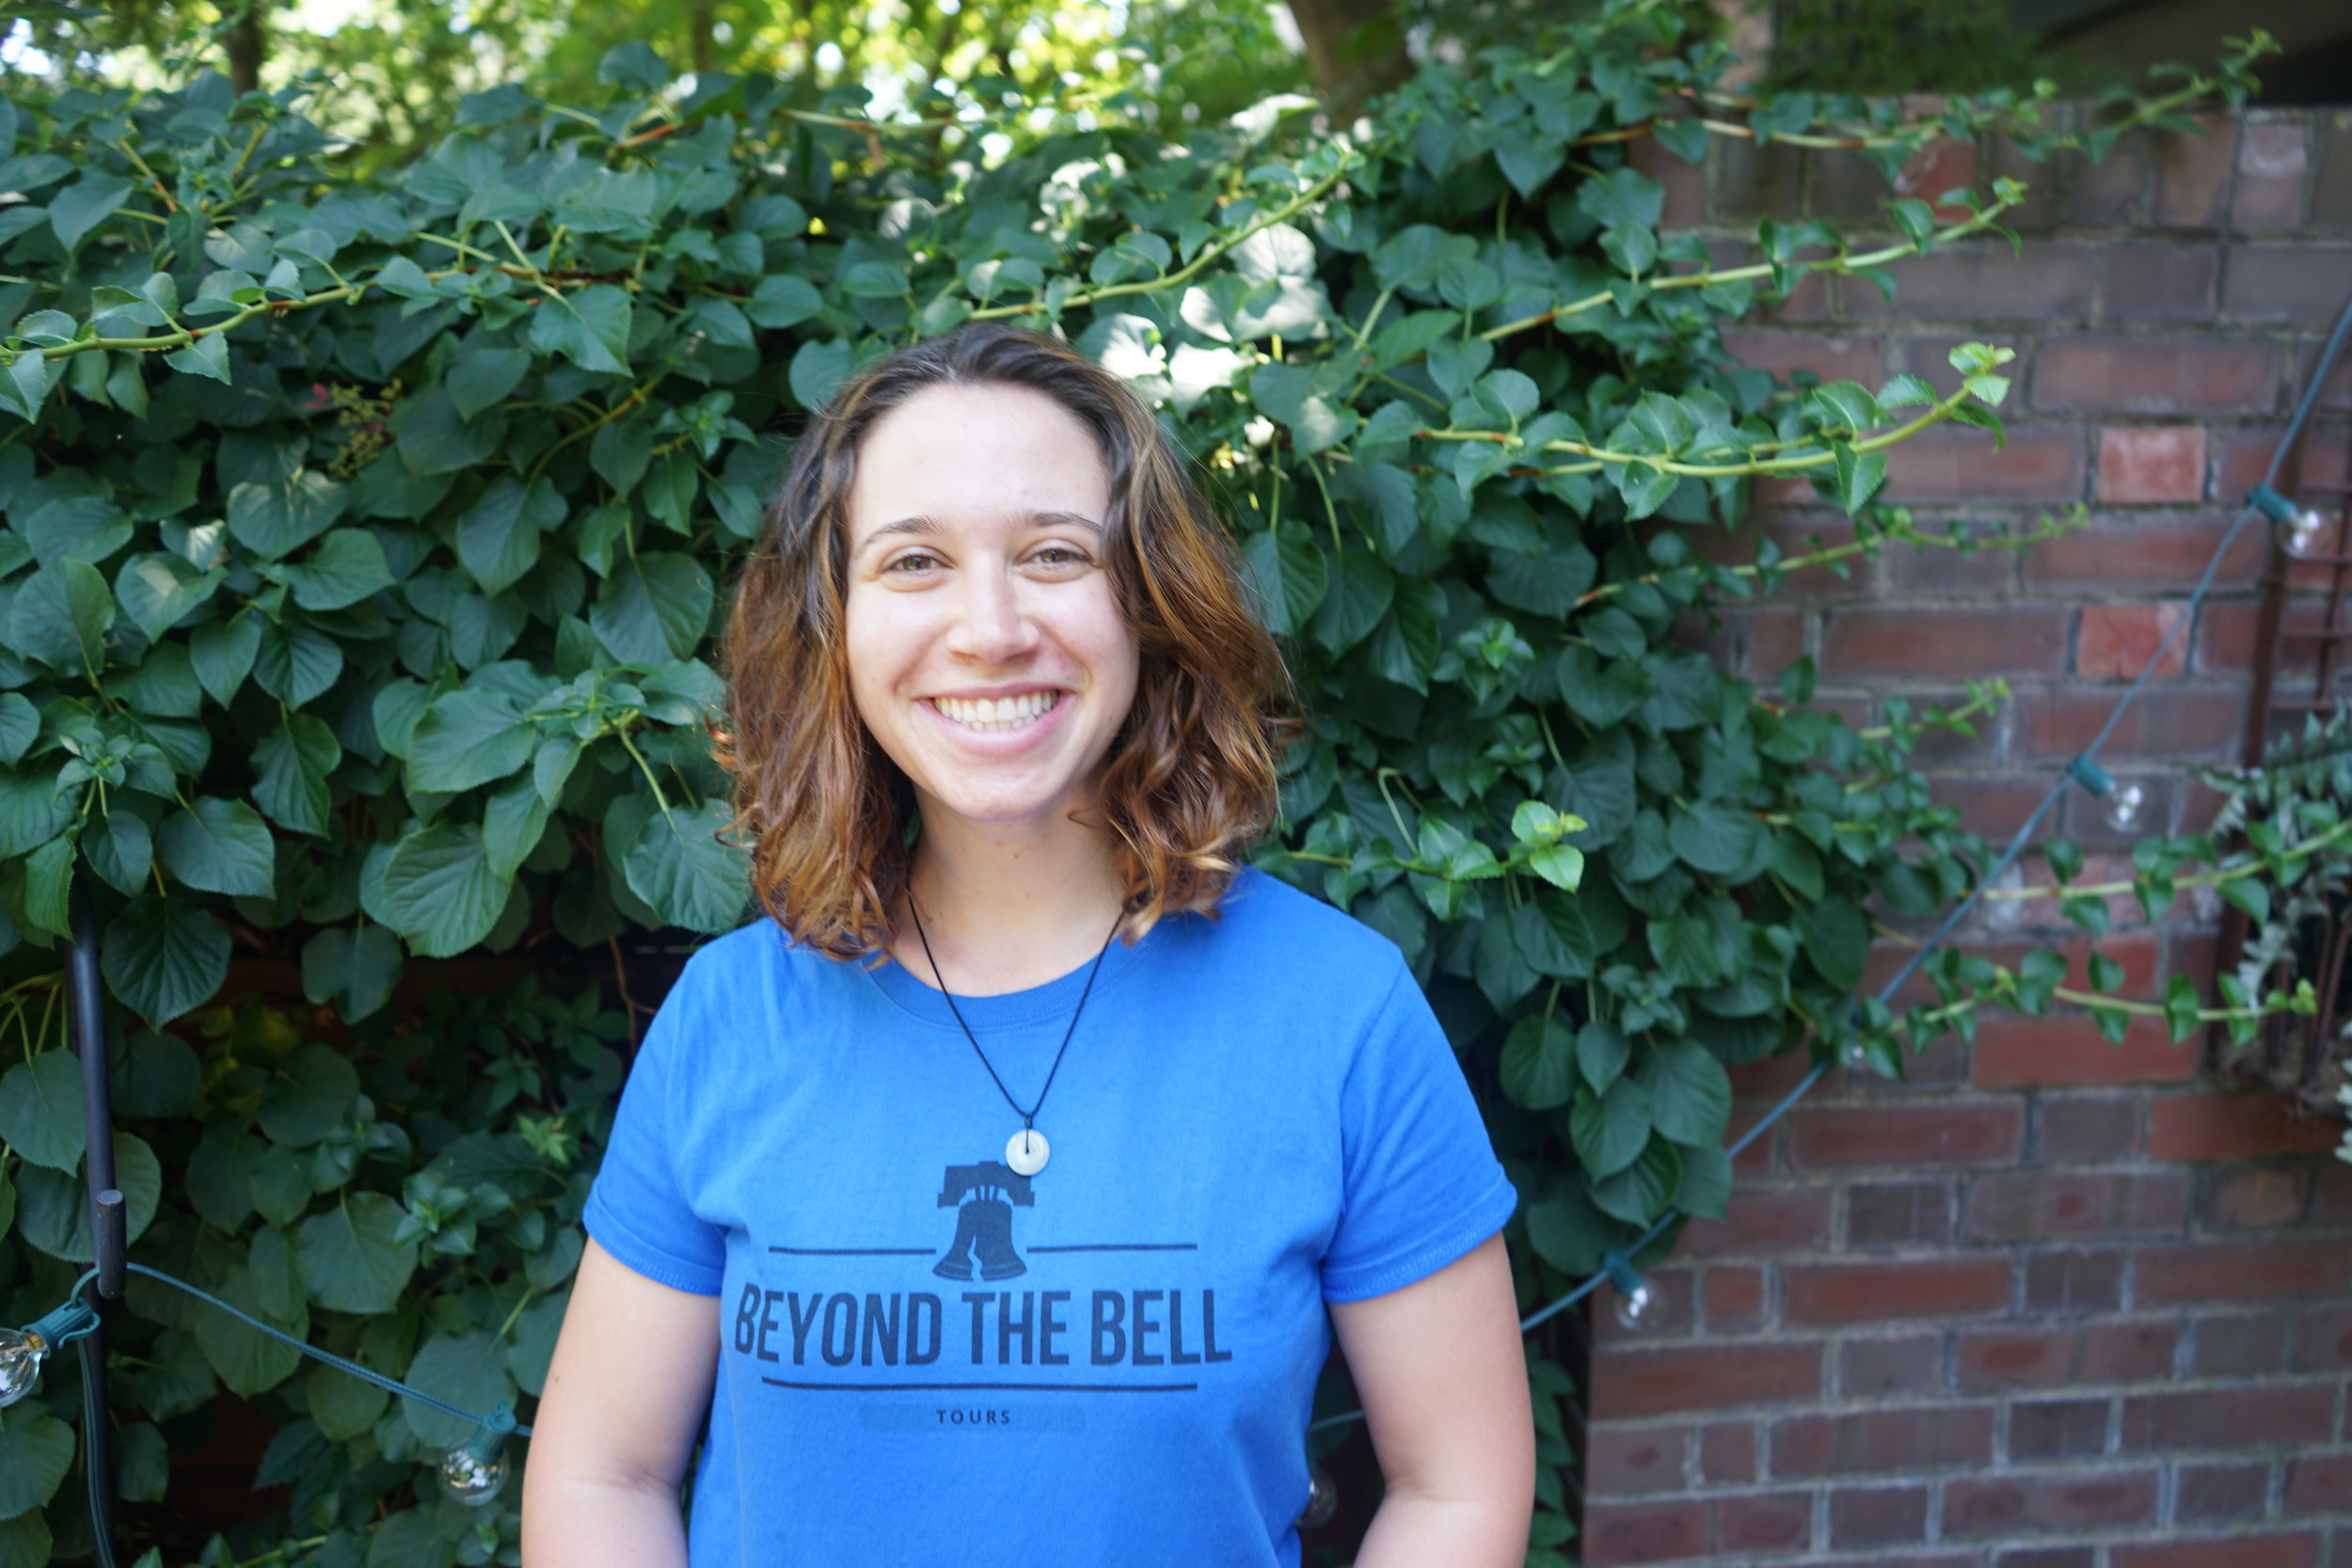 """I think everyone has the right to tell stories of the places they inhabit."" - Rebecca Fisher, co-founder of Beyond the Bell"